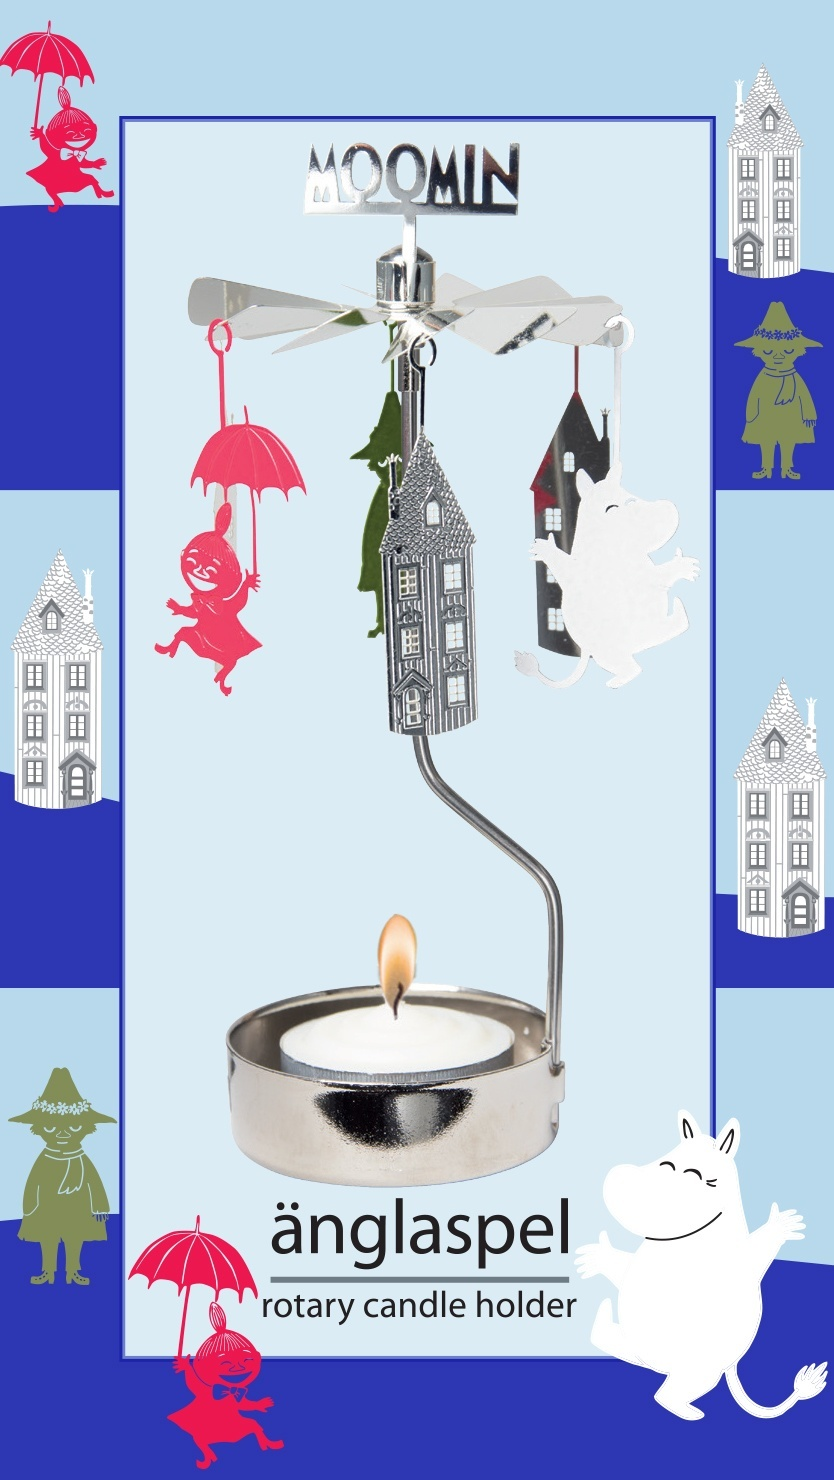 Pluto Rotary Candle Holder Moomin Friends & House